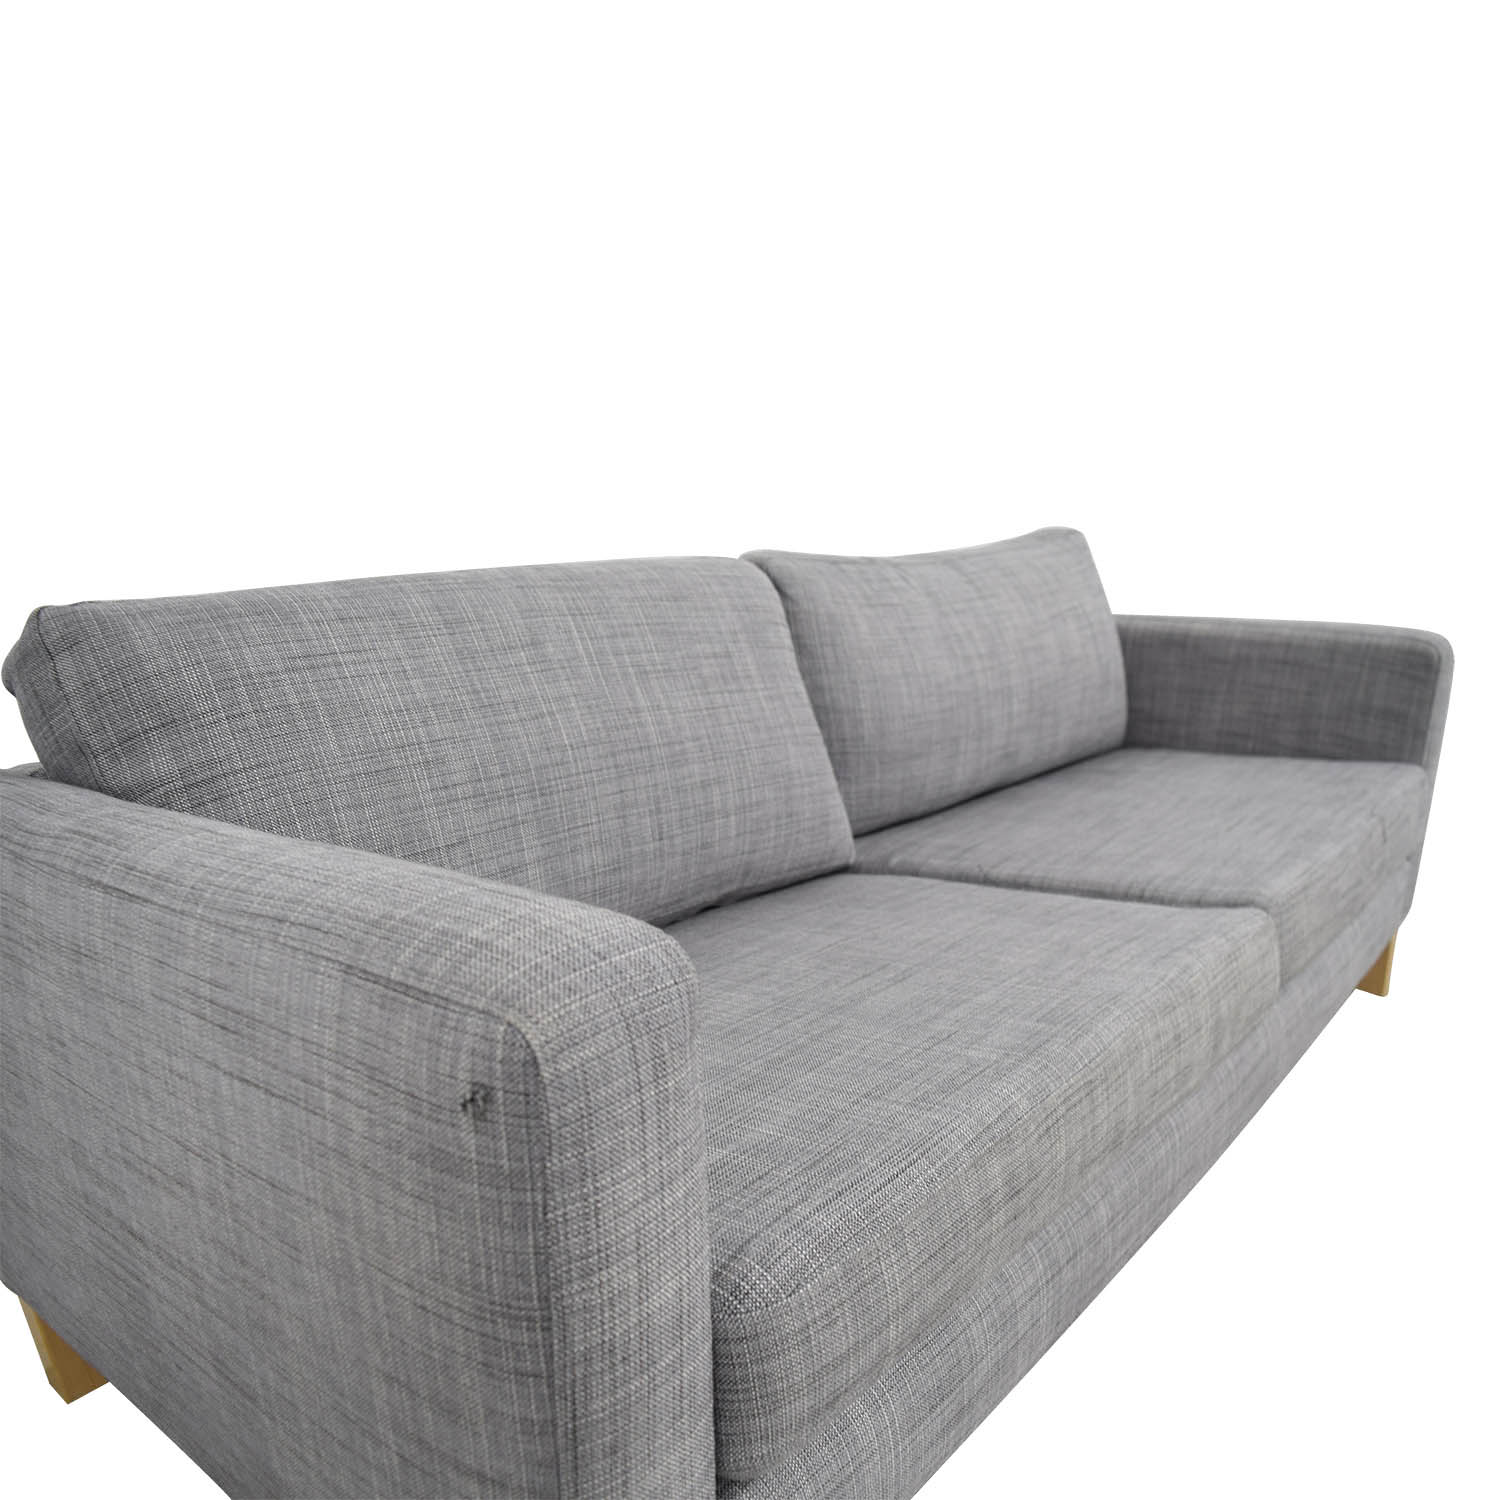 Couch Ikea 81 Off Ikea Ikea Grey Two Cushion Couch Sofas